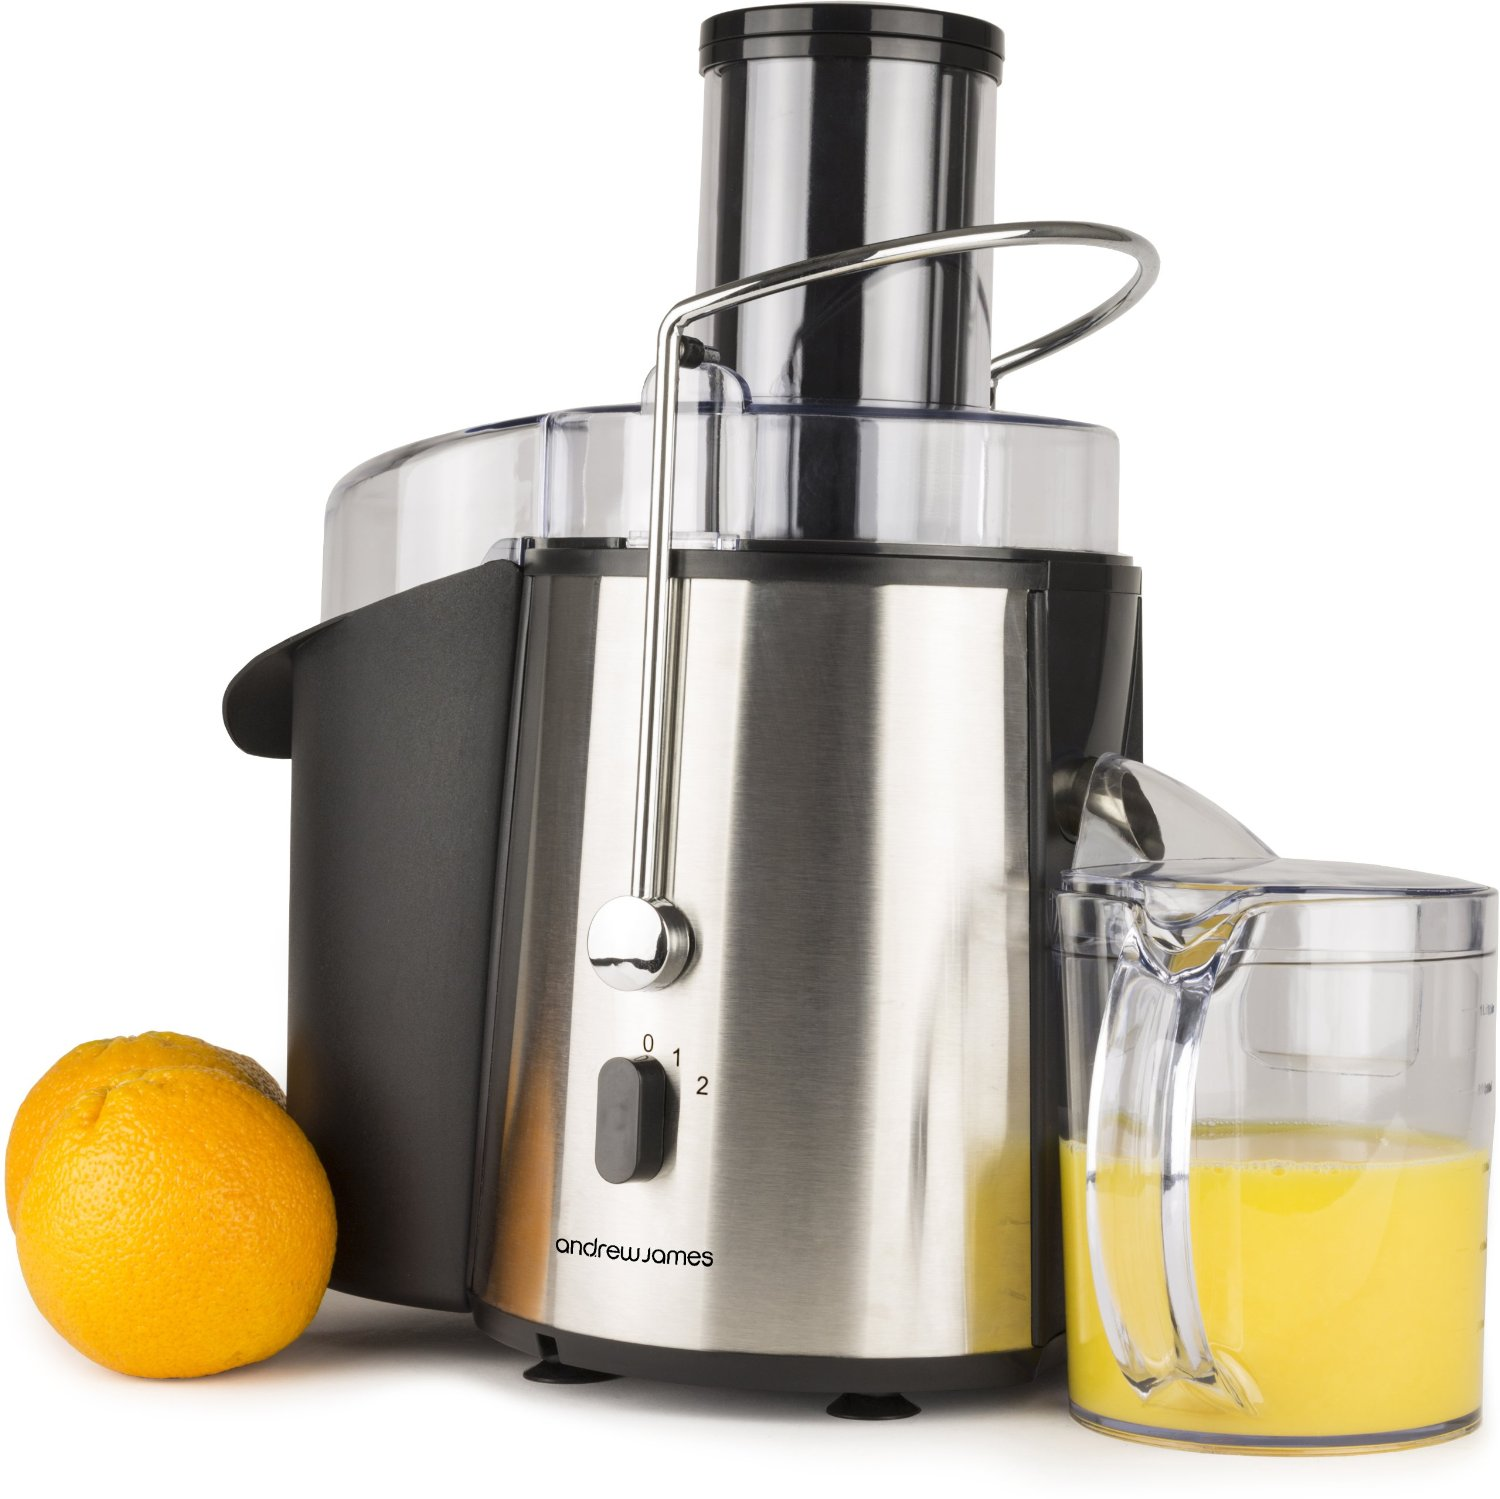 Andrew James Masticating Slow Juicer Review : Andrew James Professional Whole Fruit Power Juicer Review iFancy Shopping